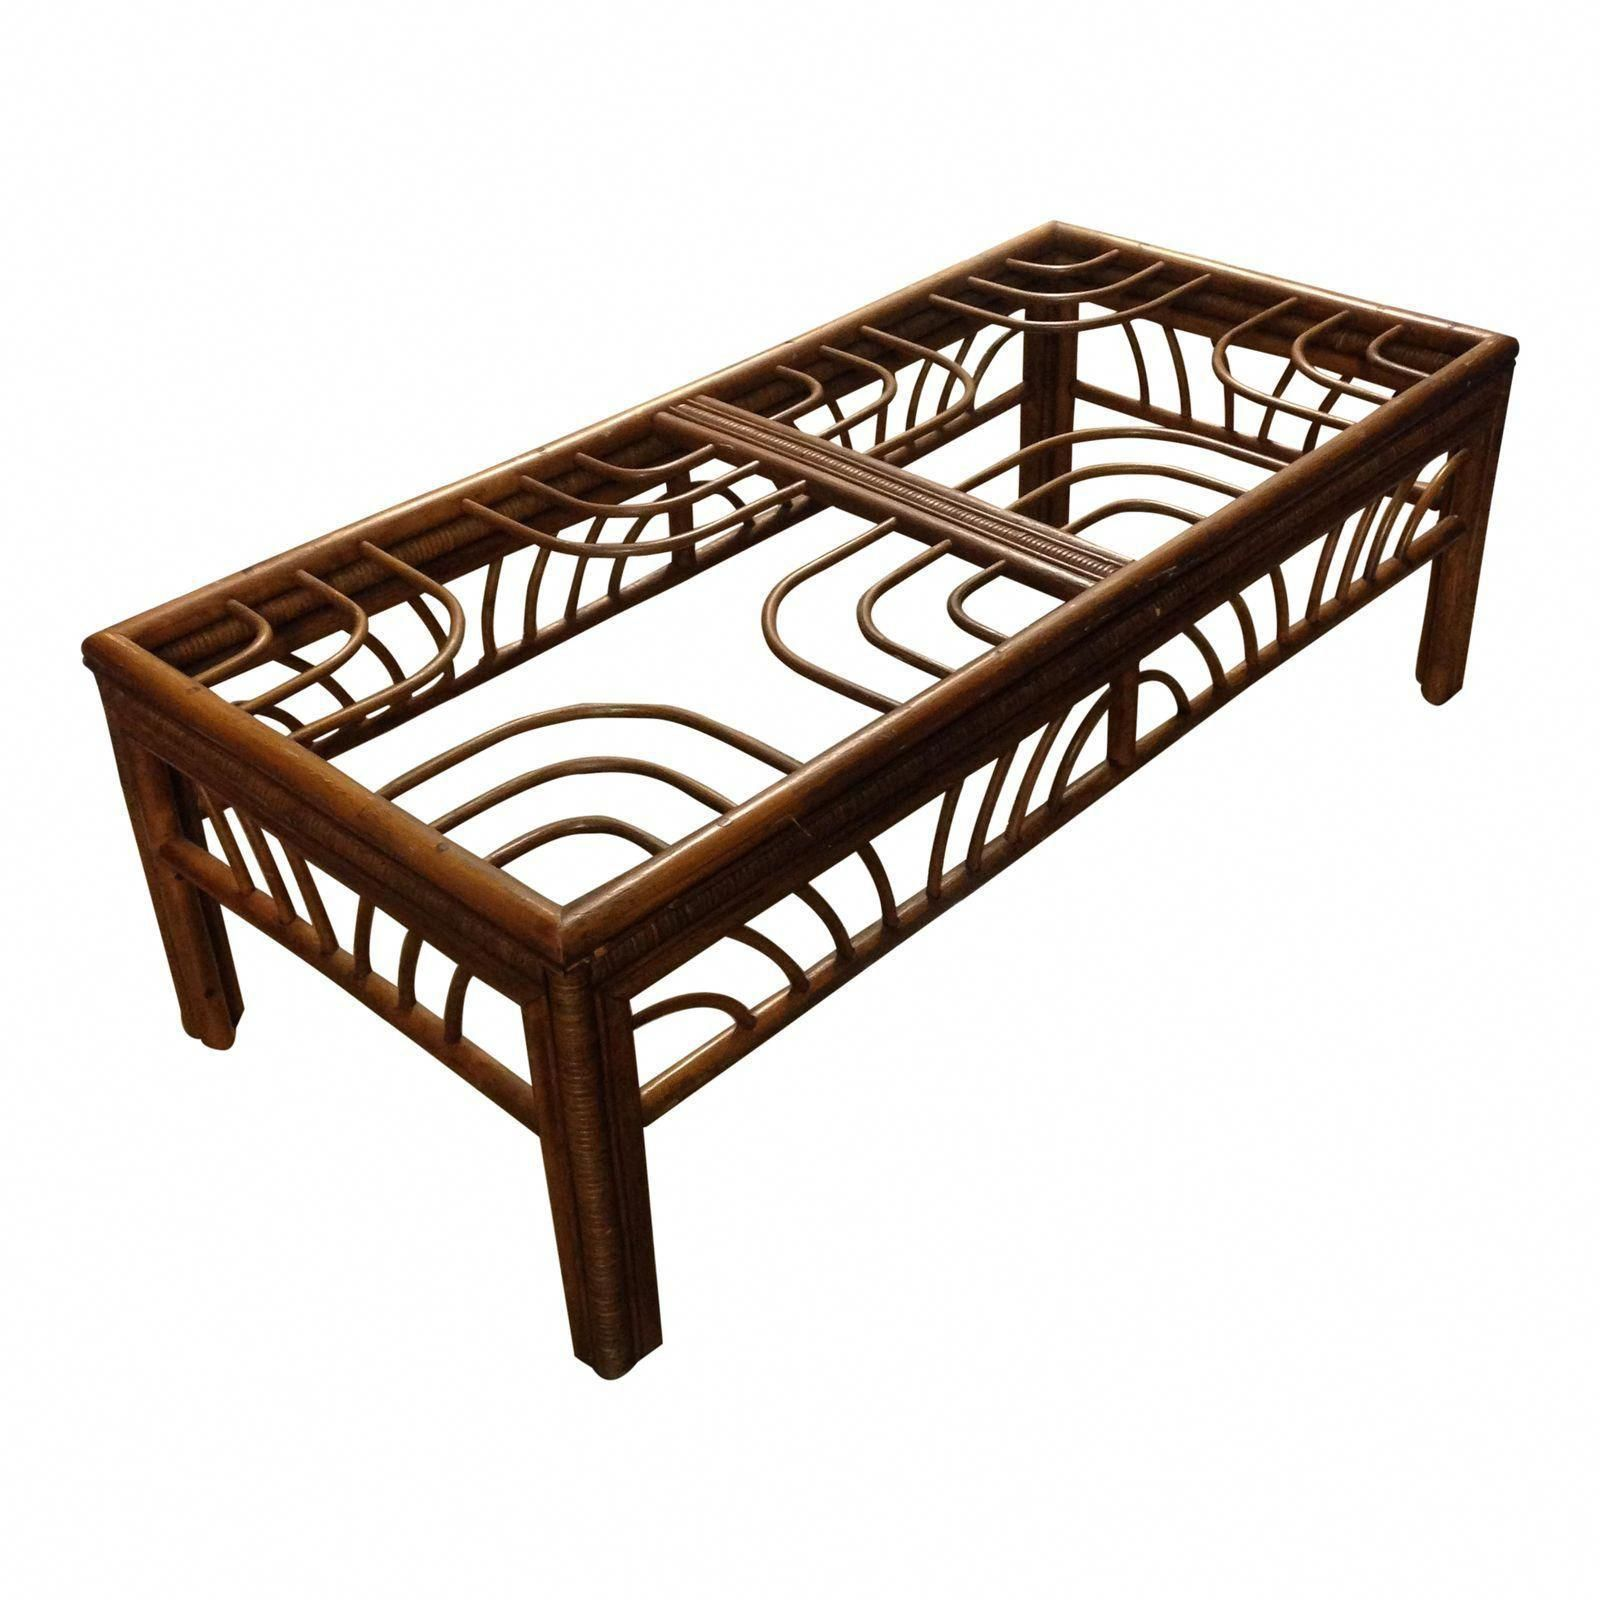 vintage bamboo rattan coffee table image 1 of 4 only 175 but rh pinterest com